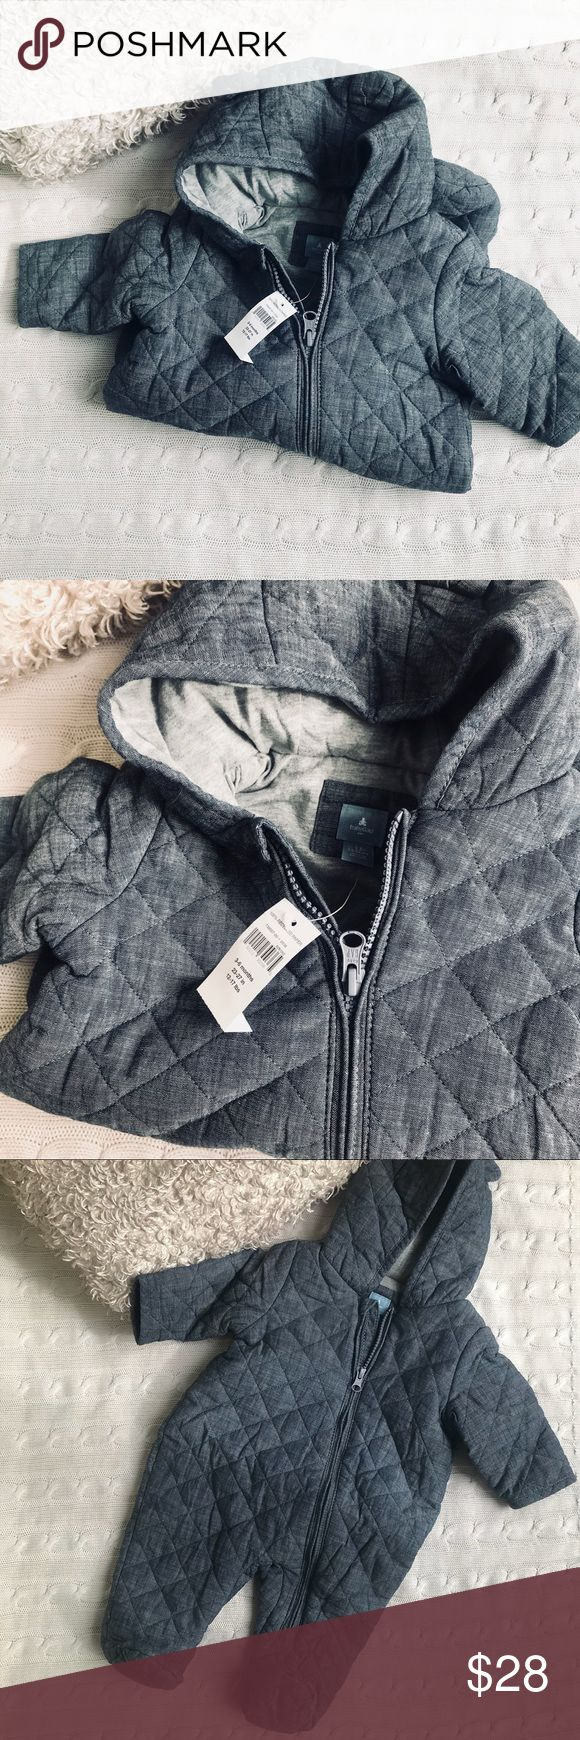 Baby Gap Quilted Snow Suit ❄️ Adorable quilted Baby GAP snowsuit. Cotton jersey lined. Denim and gray. 6-12 mos. never worn. BNWT. GAP One Pieces Footies #babysnowsuit